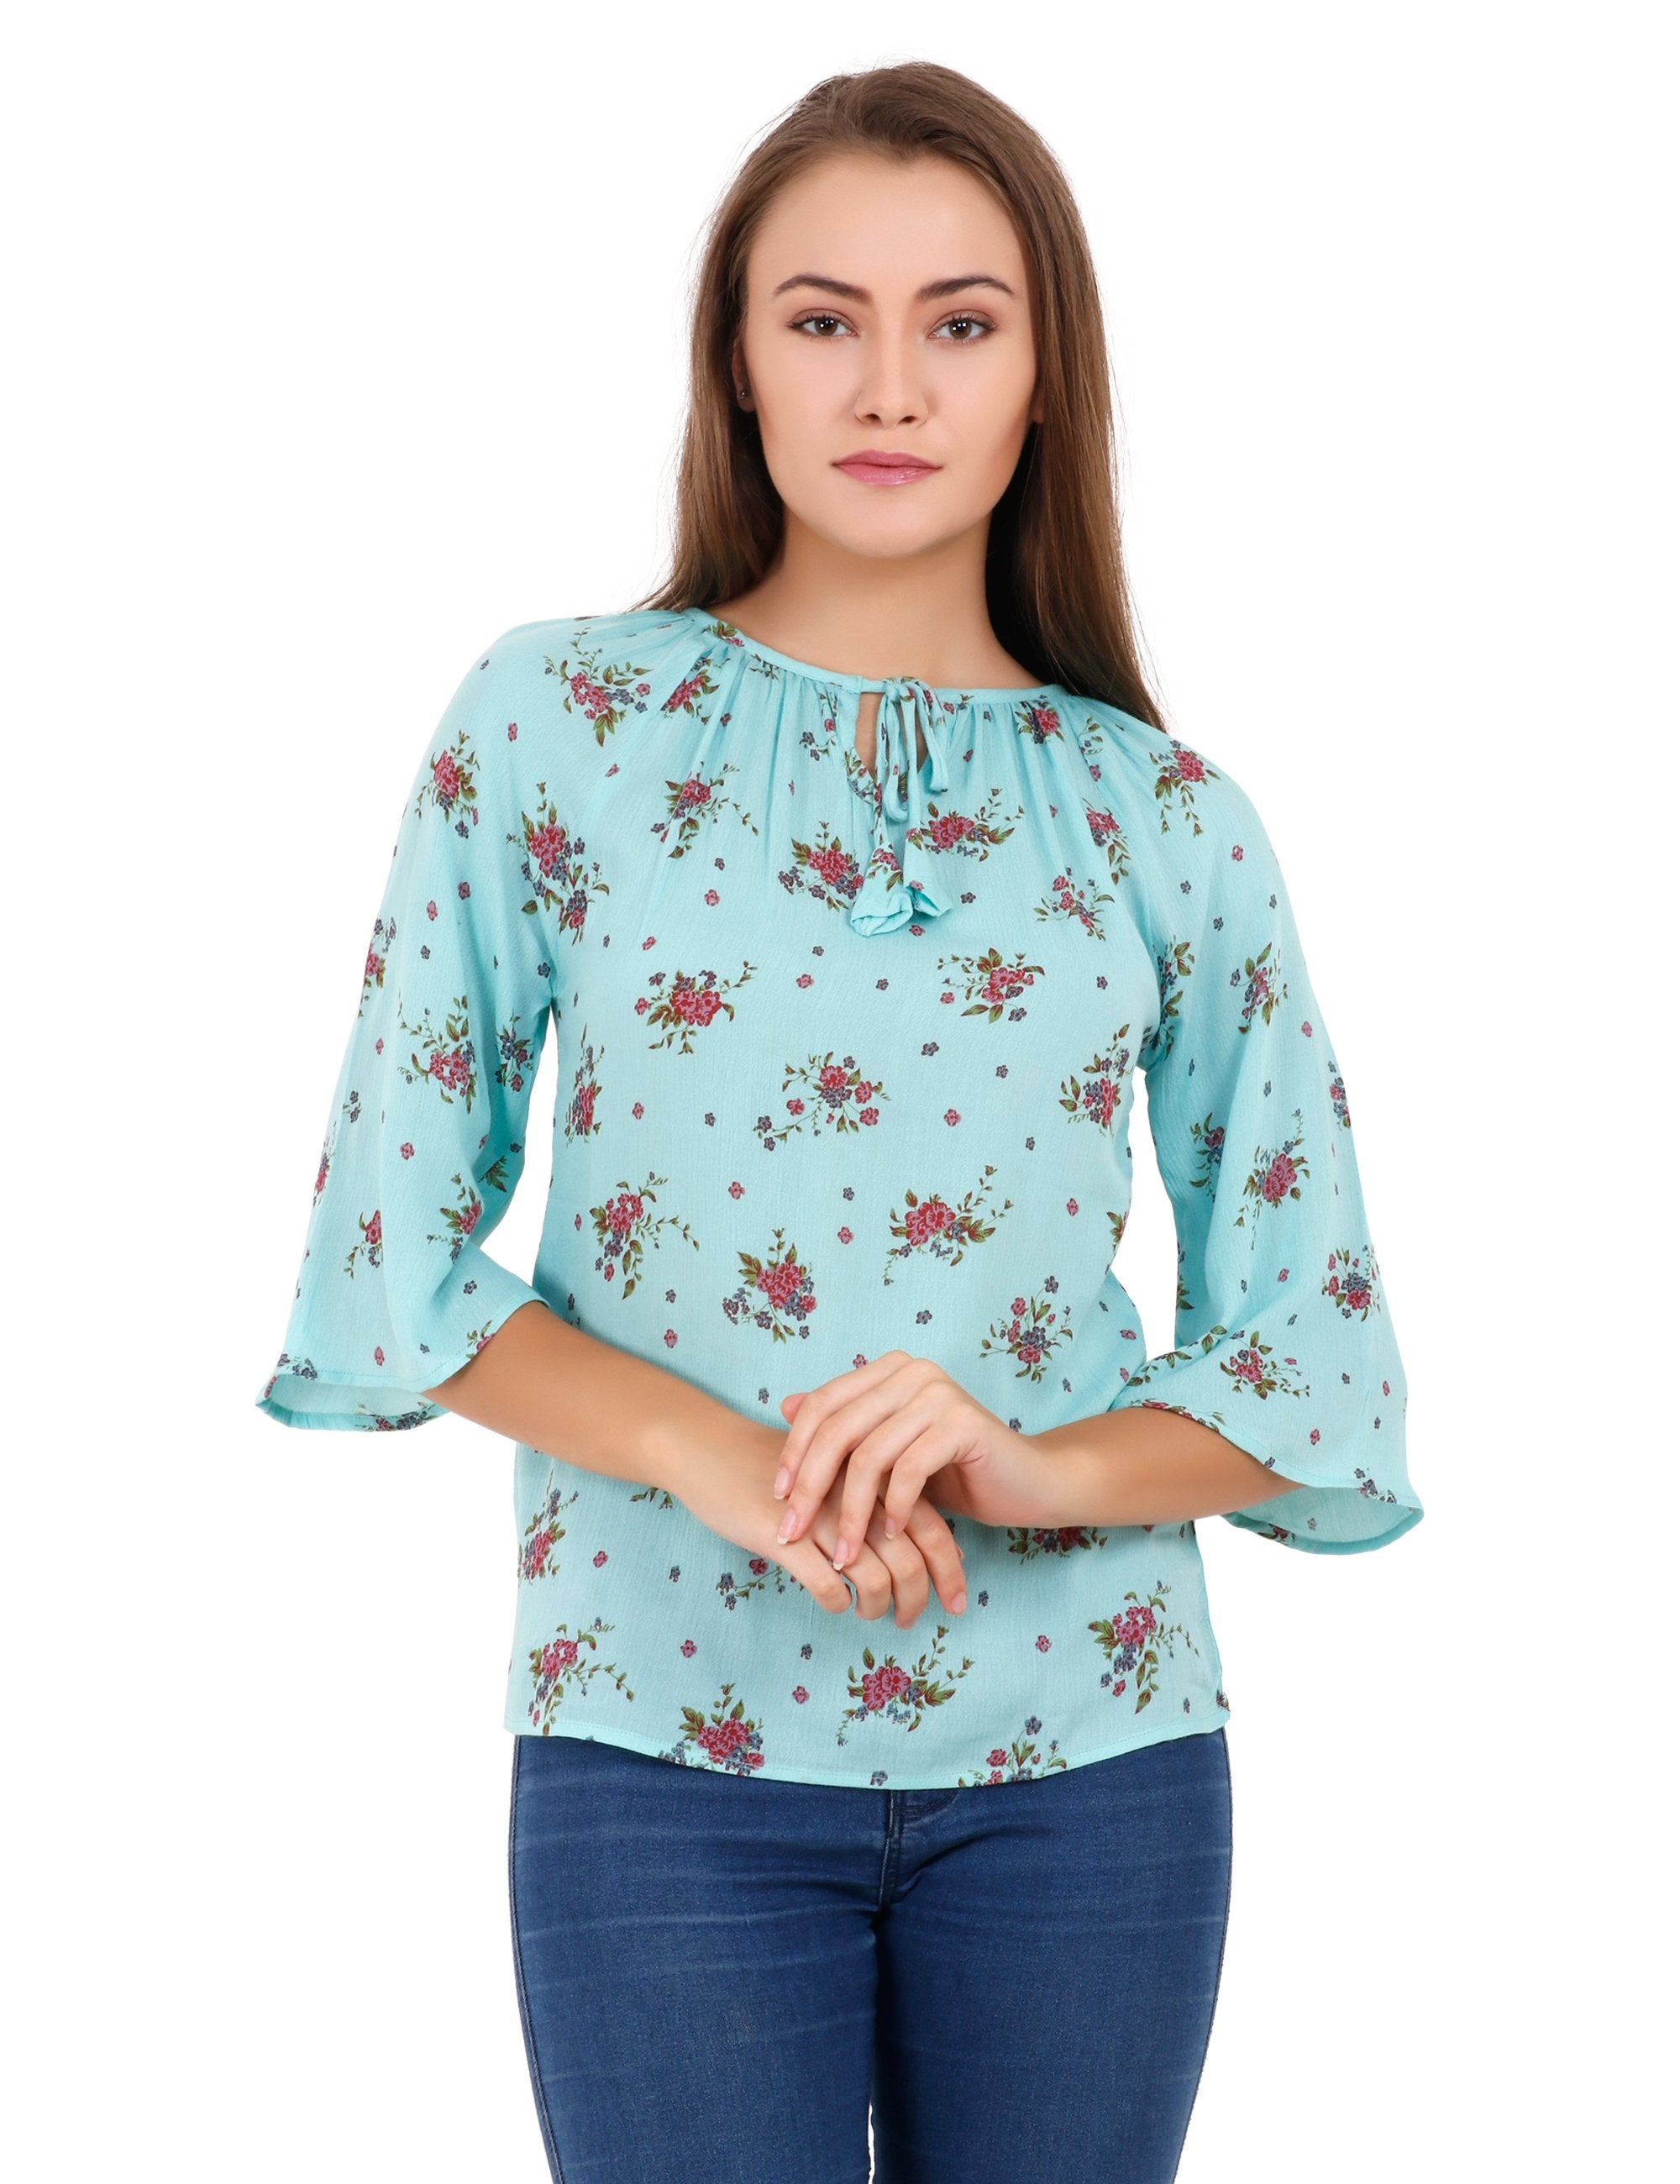 a3d5cfc3d28 Buy Sea Green Color Polyester Stitched Top | Zinnga